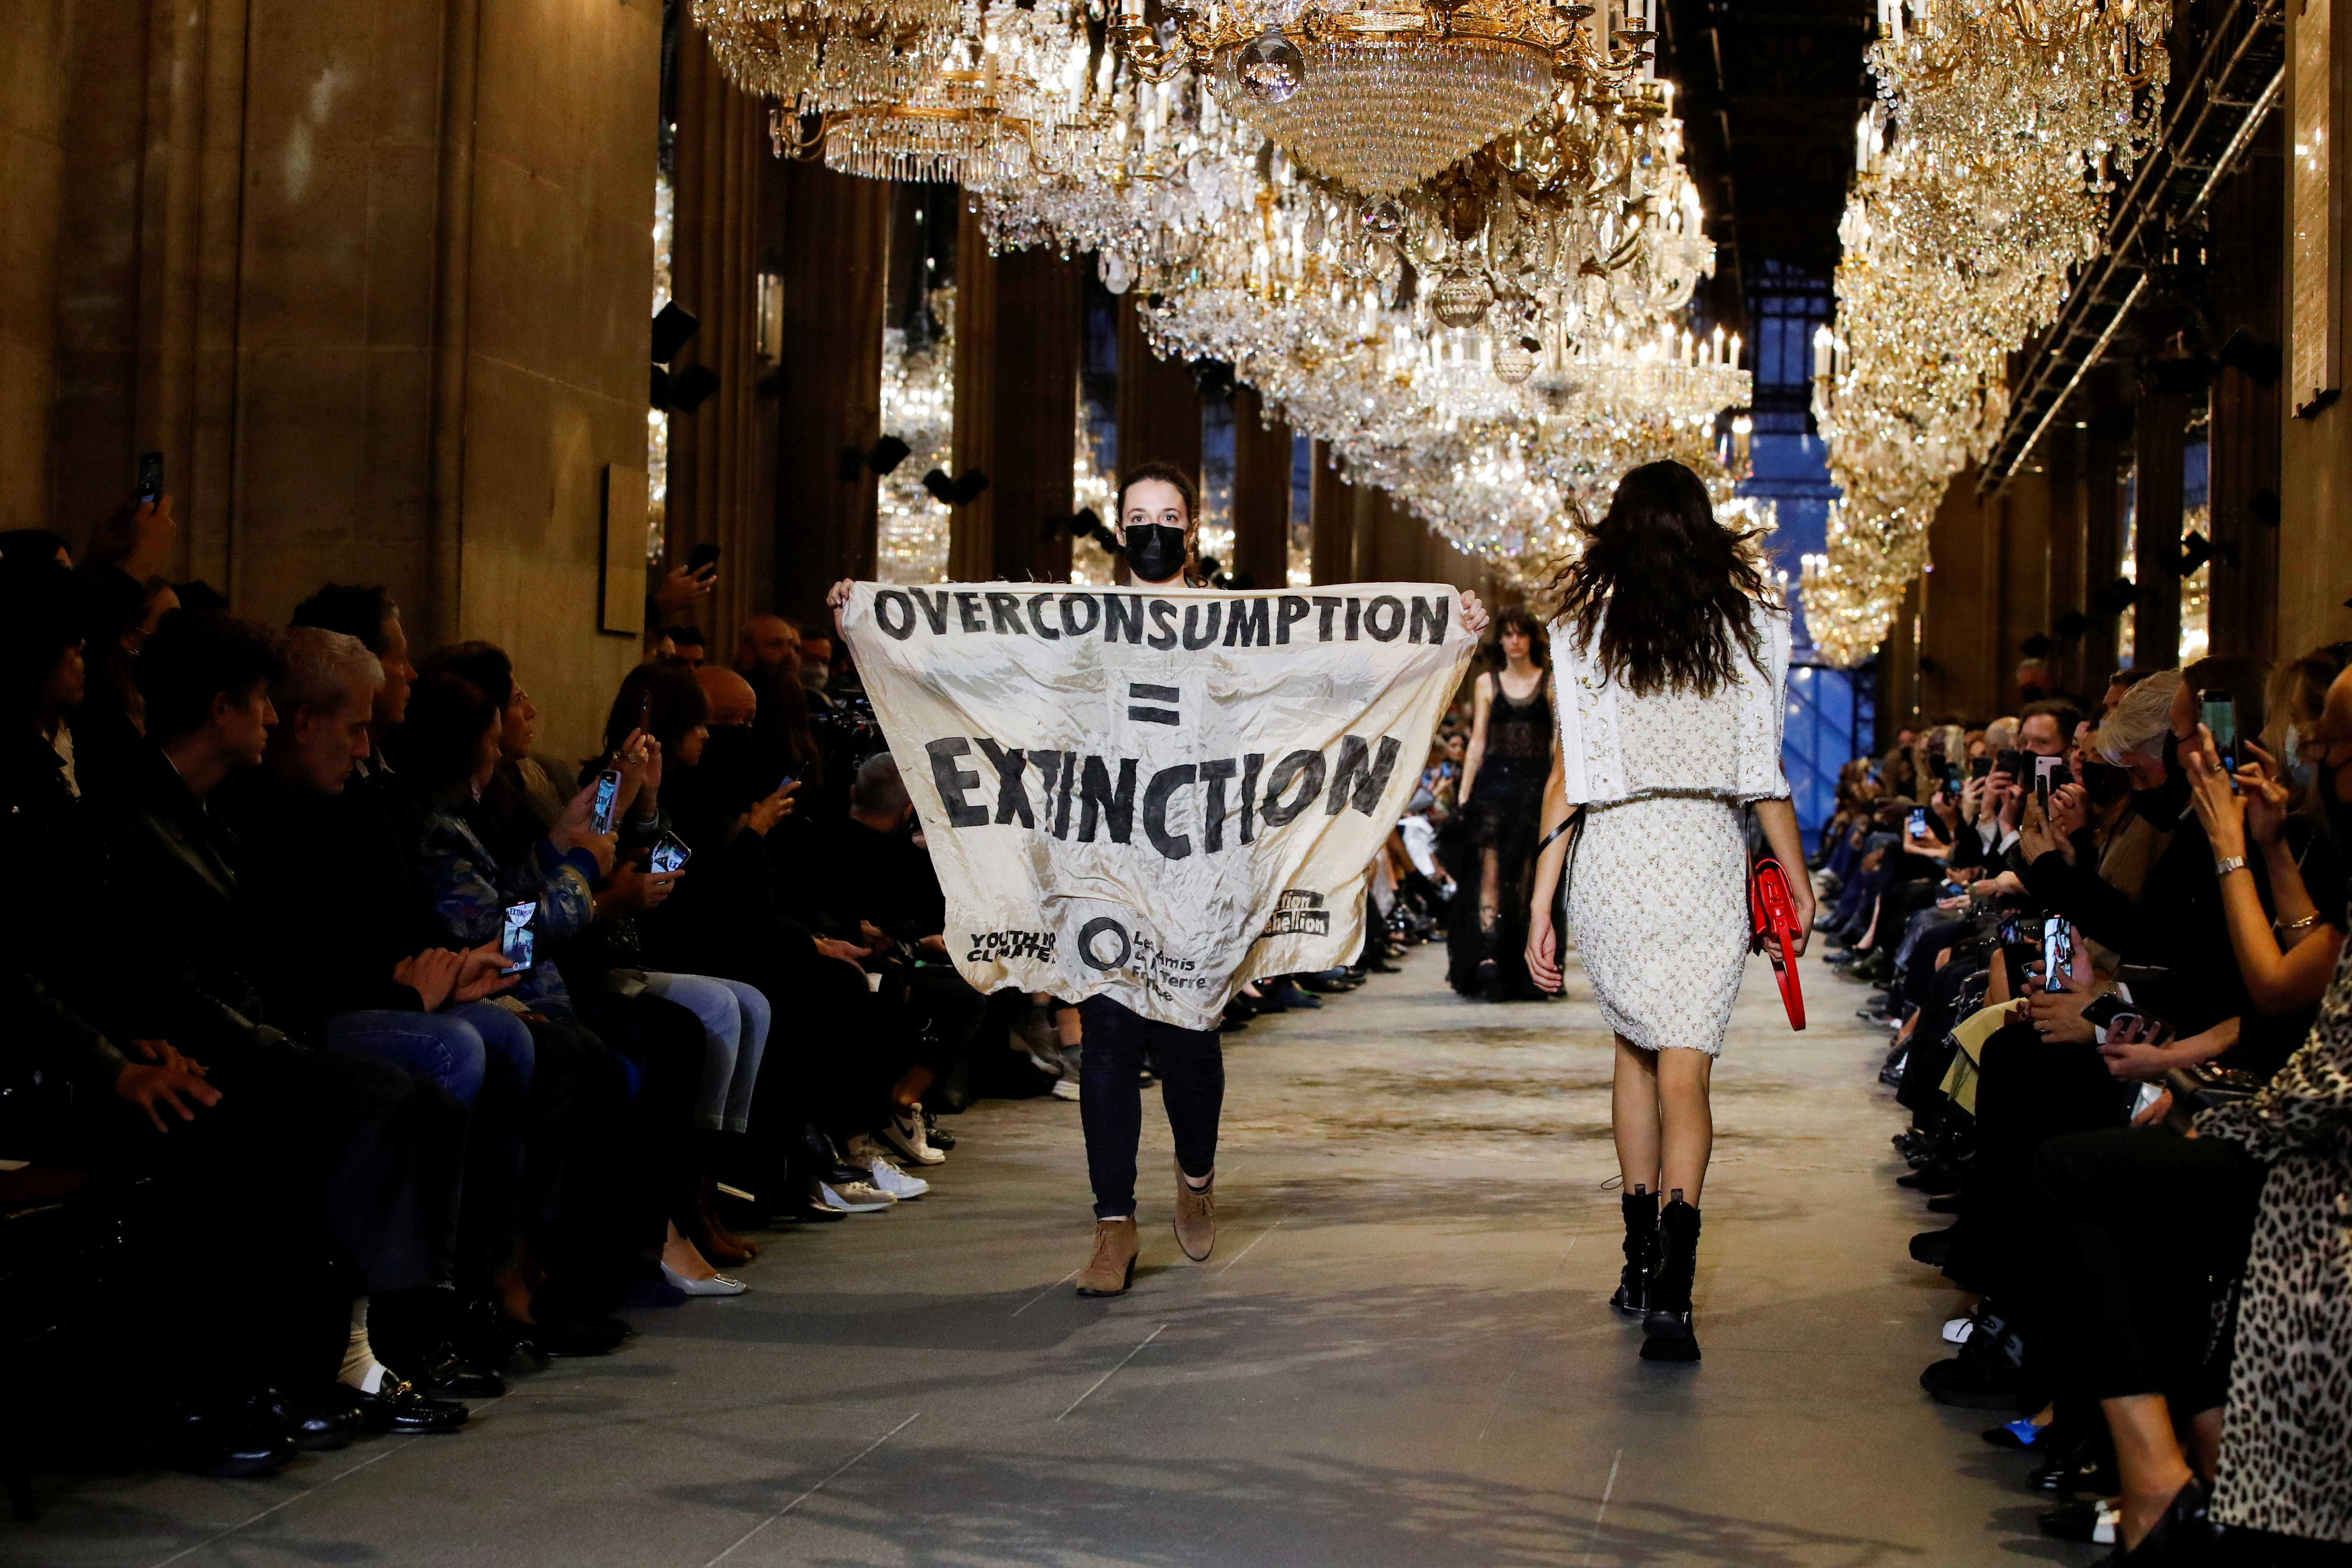 """An activist walks on the ramp with a banner that says """"Overconsumption = Extinction"""" as she crashes the designer Nicolas Ghesquiere Spring/Summer 2022 women's ready-to-wear collection show for fashion house Louis Vuitton during Paris Fashion Week in Paris, France, October 5, 2021. REUTERS/Gonzalo Fuentes"""